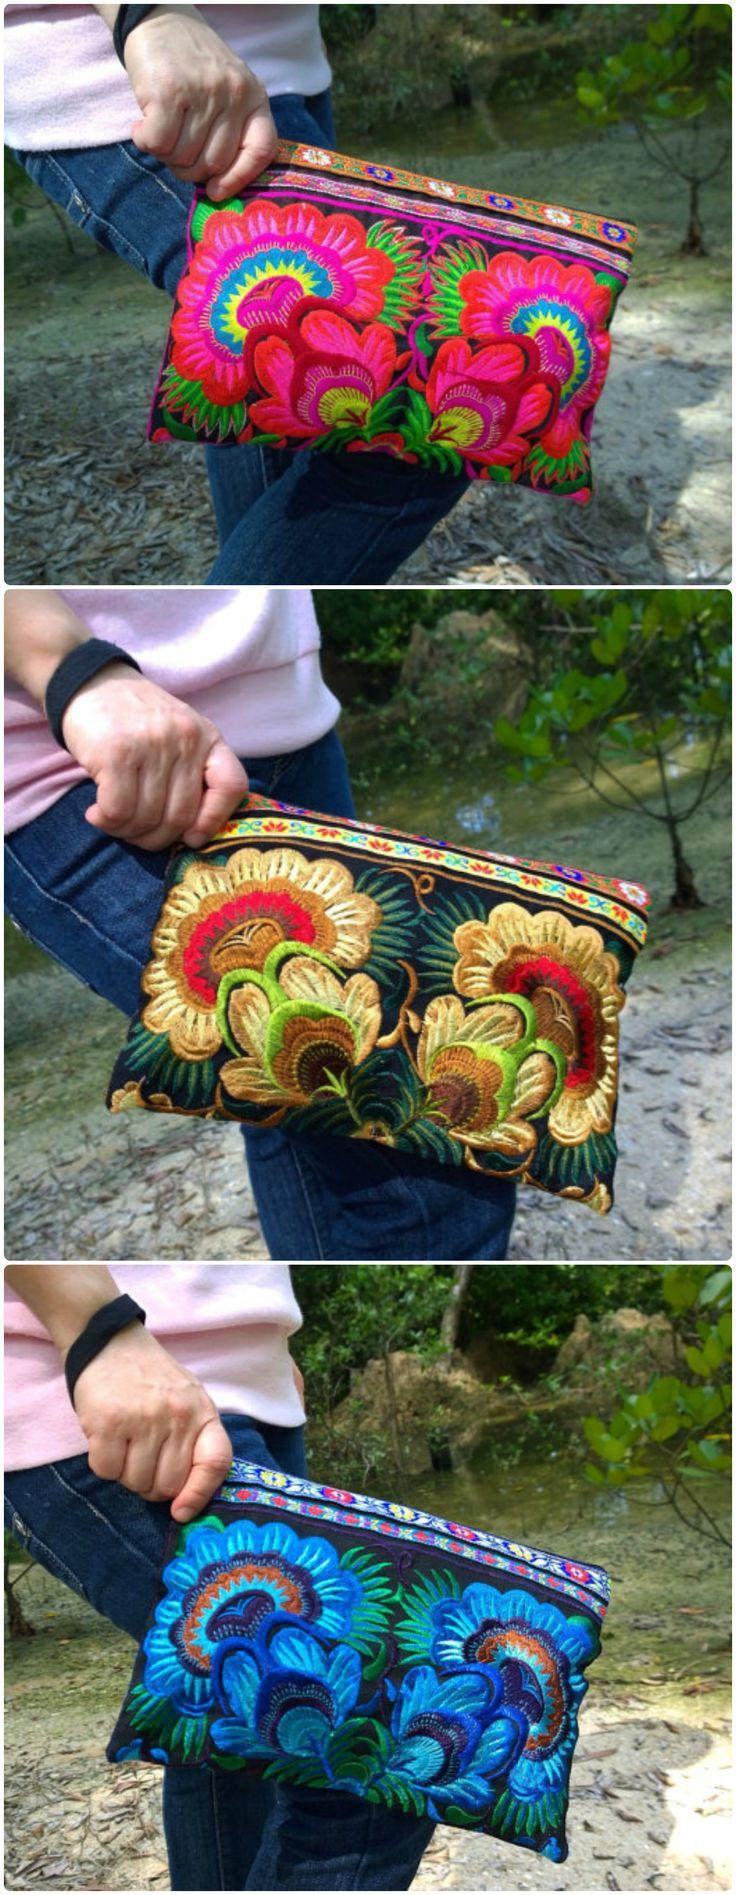 Boda - Embroidery Bags